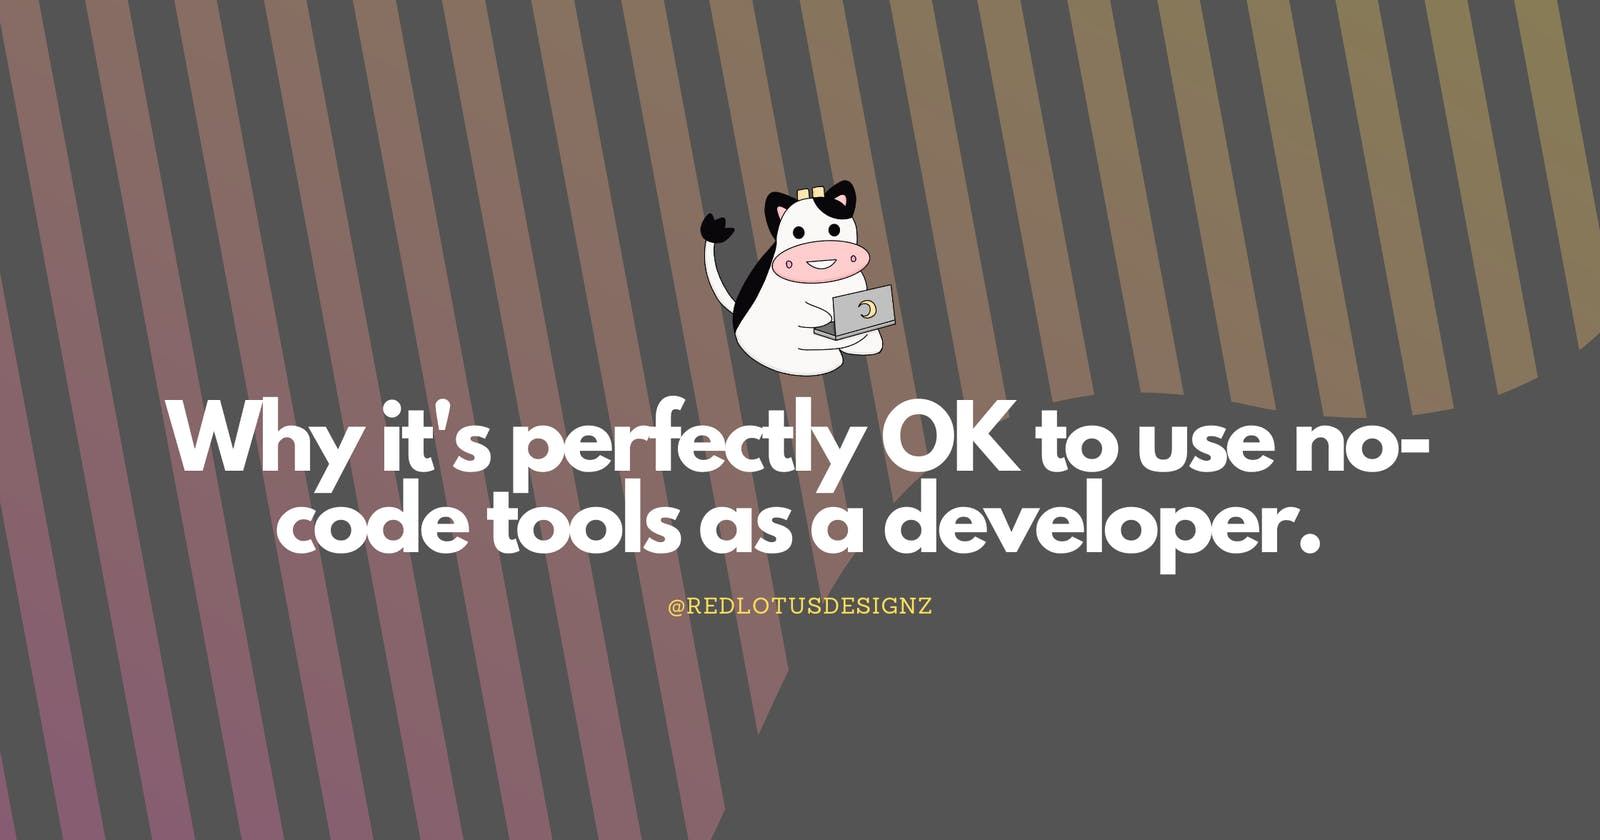 Why it's perfectly OK to use no-code tools as a developer